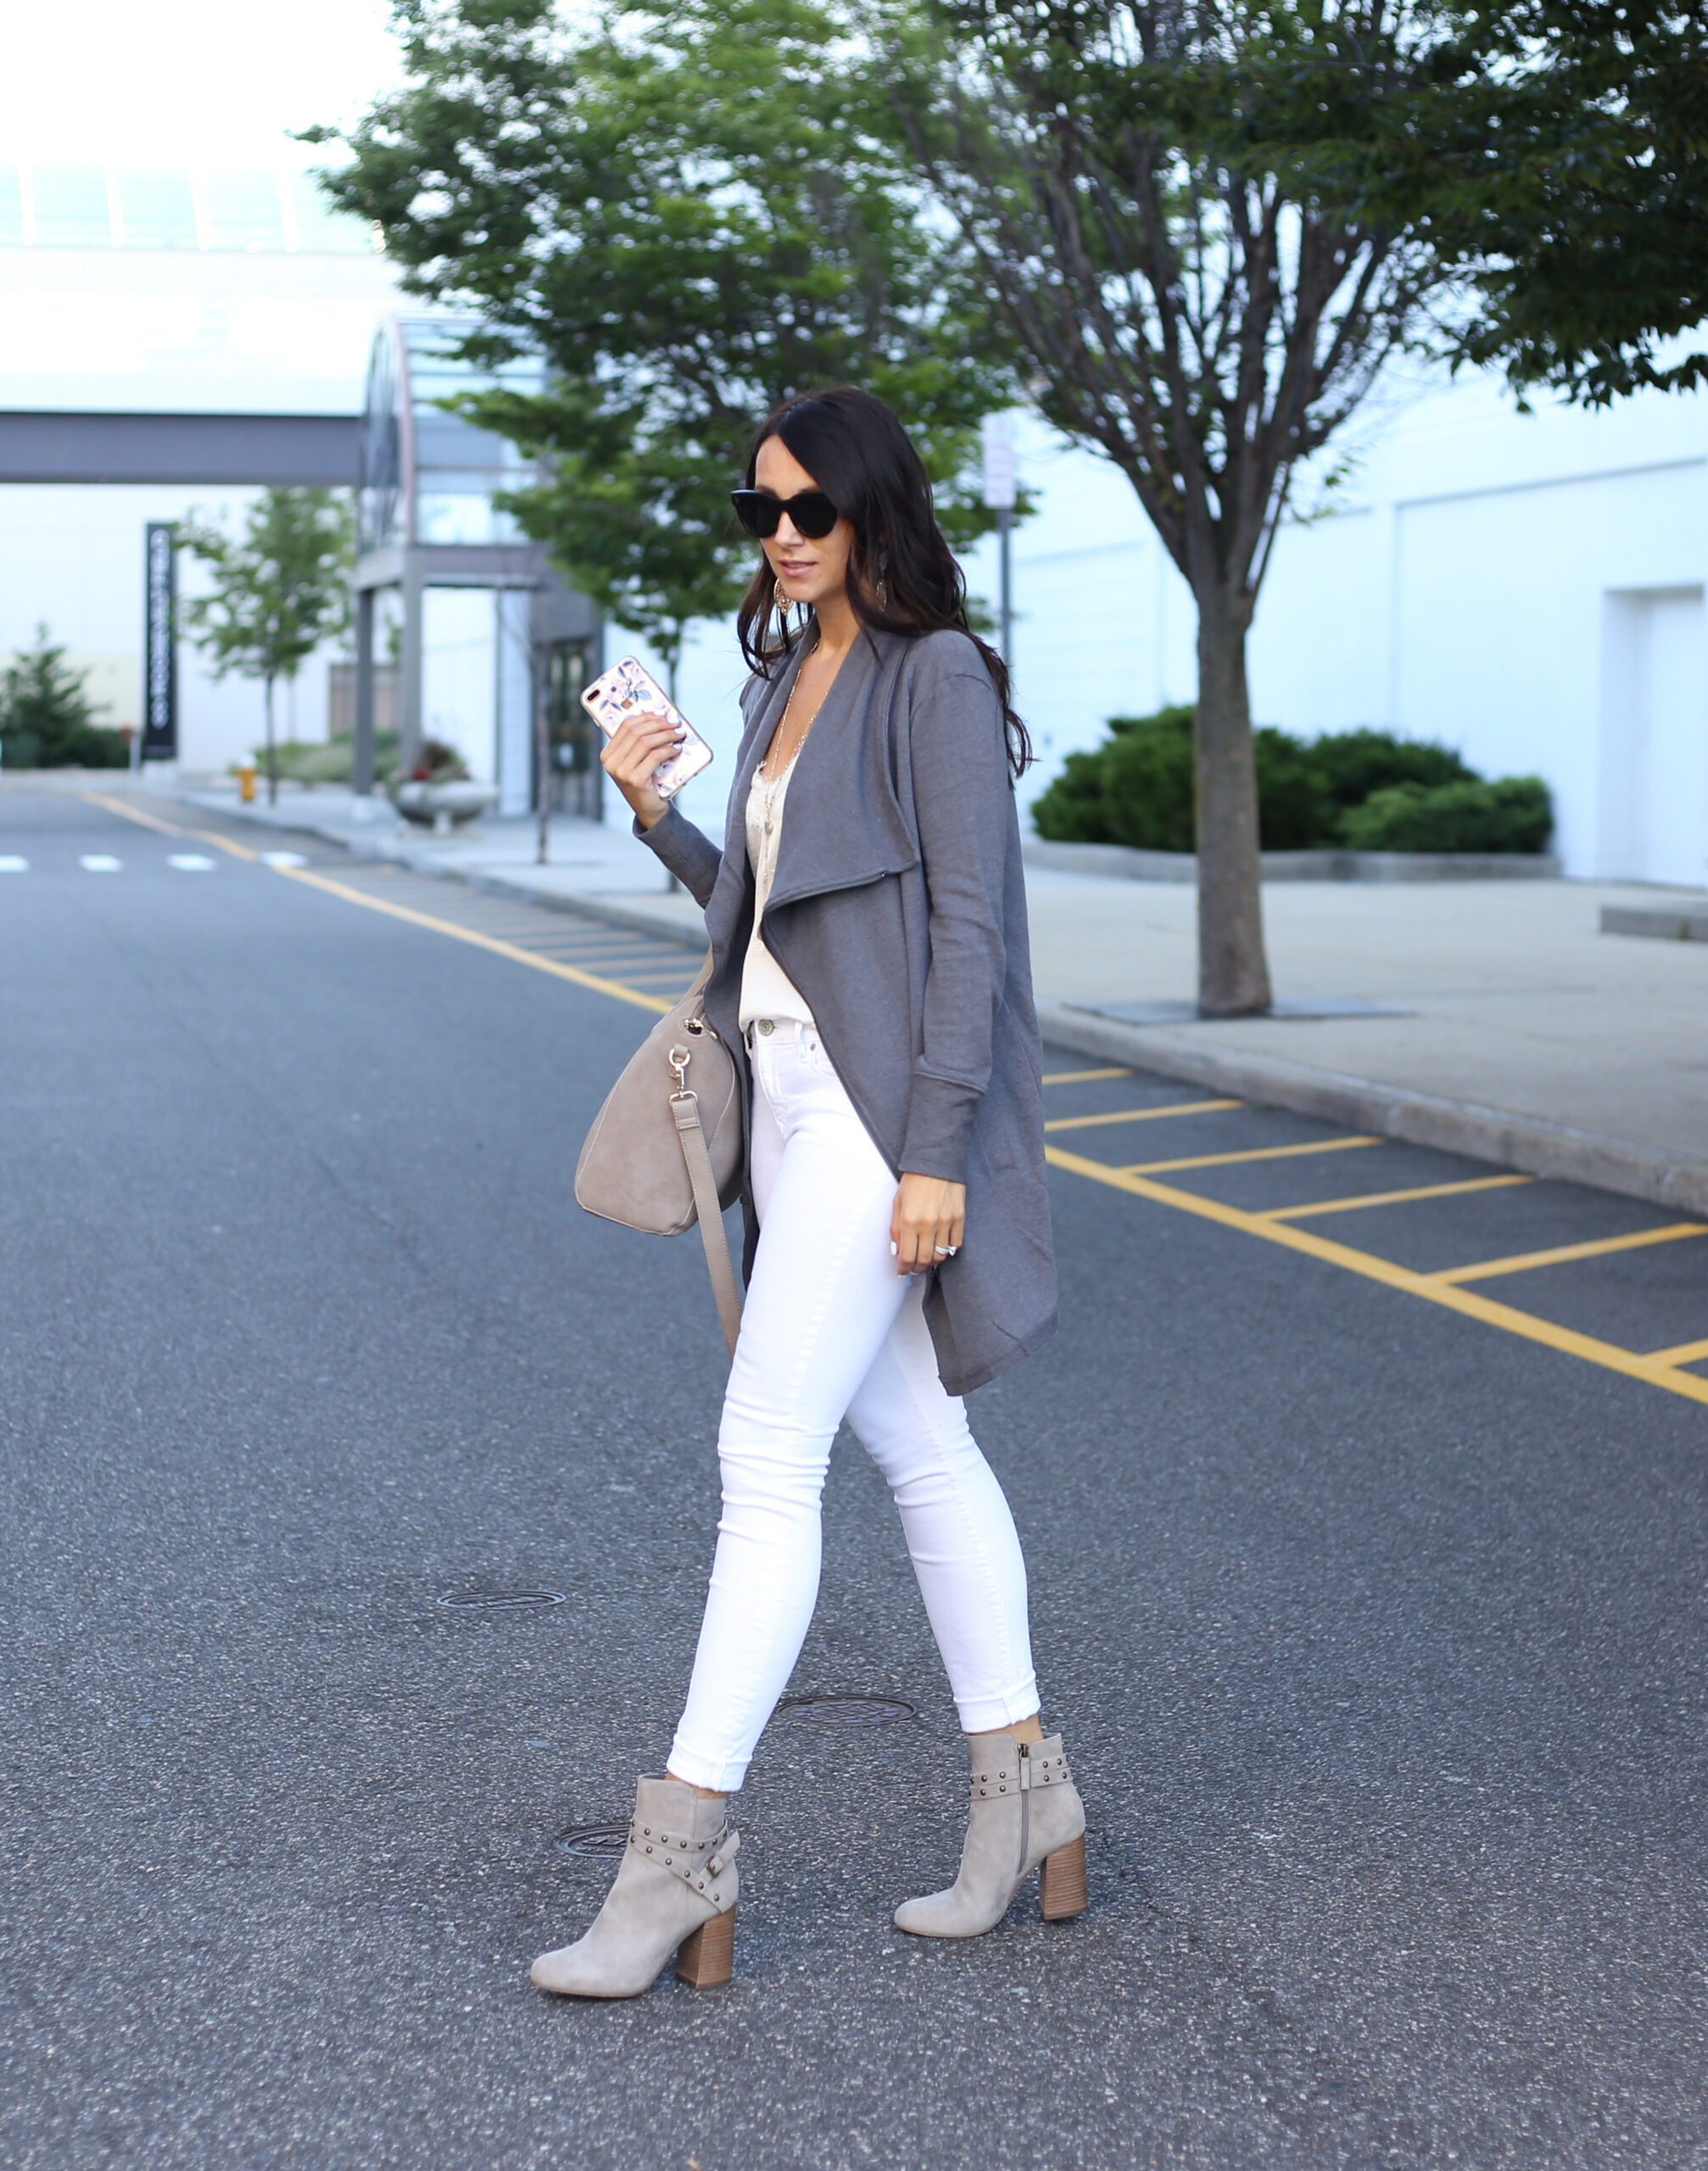 blogger Anna Monteiro of Blushing Rose STyle fashion blog wearing grey BP. booties from the Nordstrom Anniversary Sale 2017 and white jeans